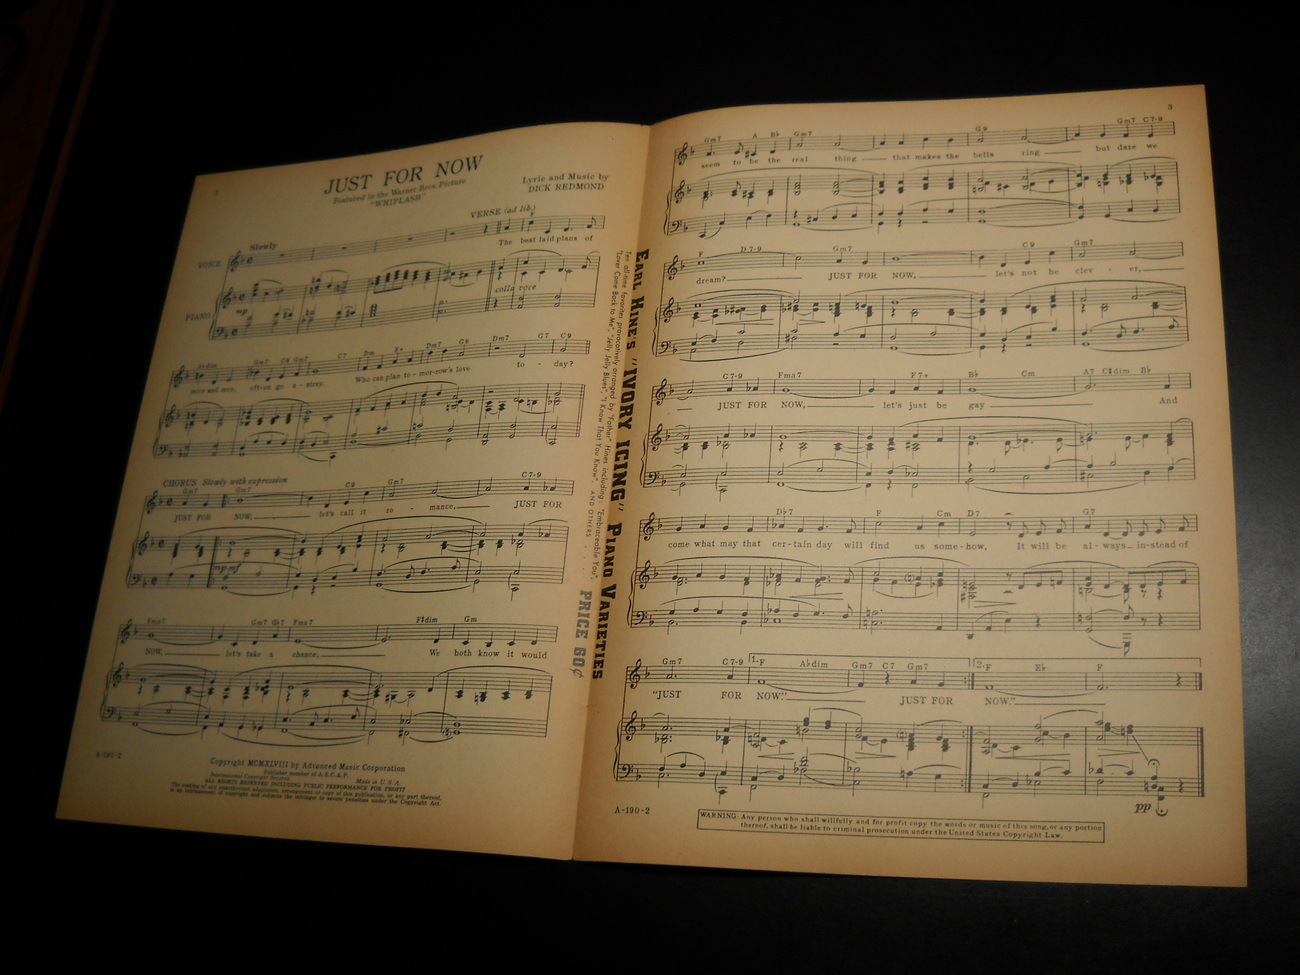 Sheet_music_just_for_now_whiplash_dana_clark_1948_advanced_music_05